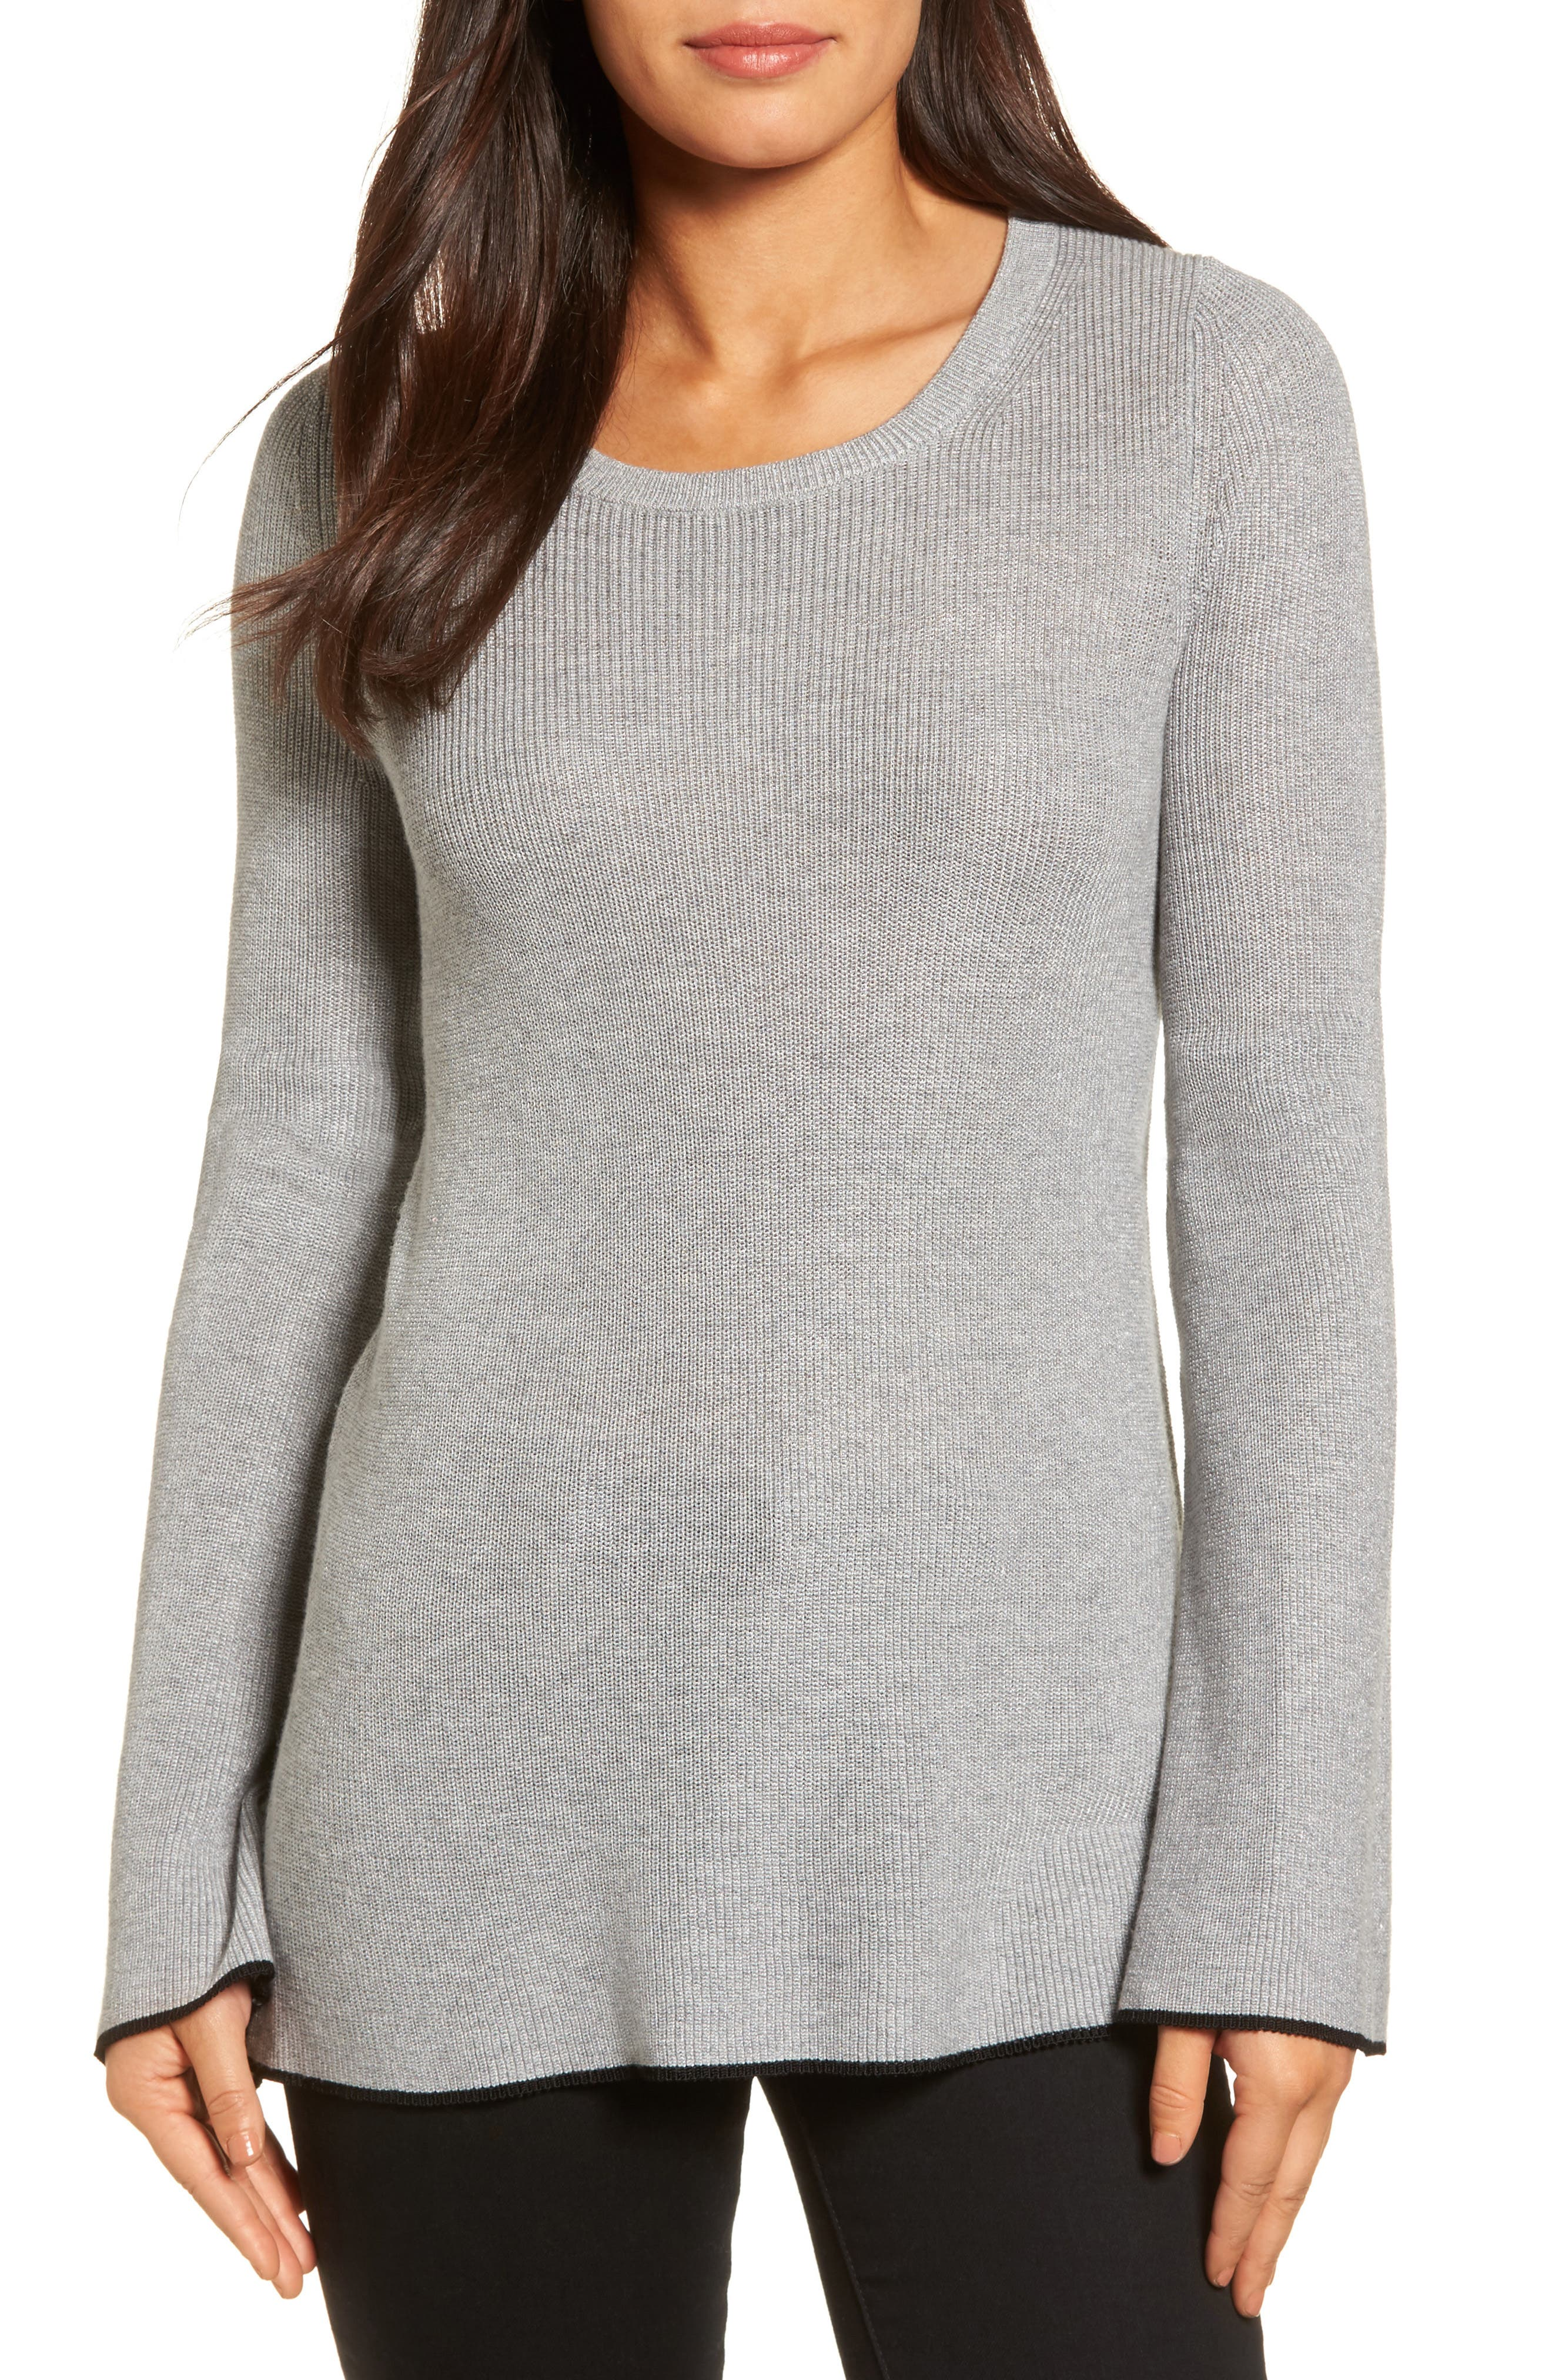 Main Image - Vince Camuto Tipped Bell Sleeve Sweater (Regular & Petite)